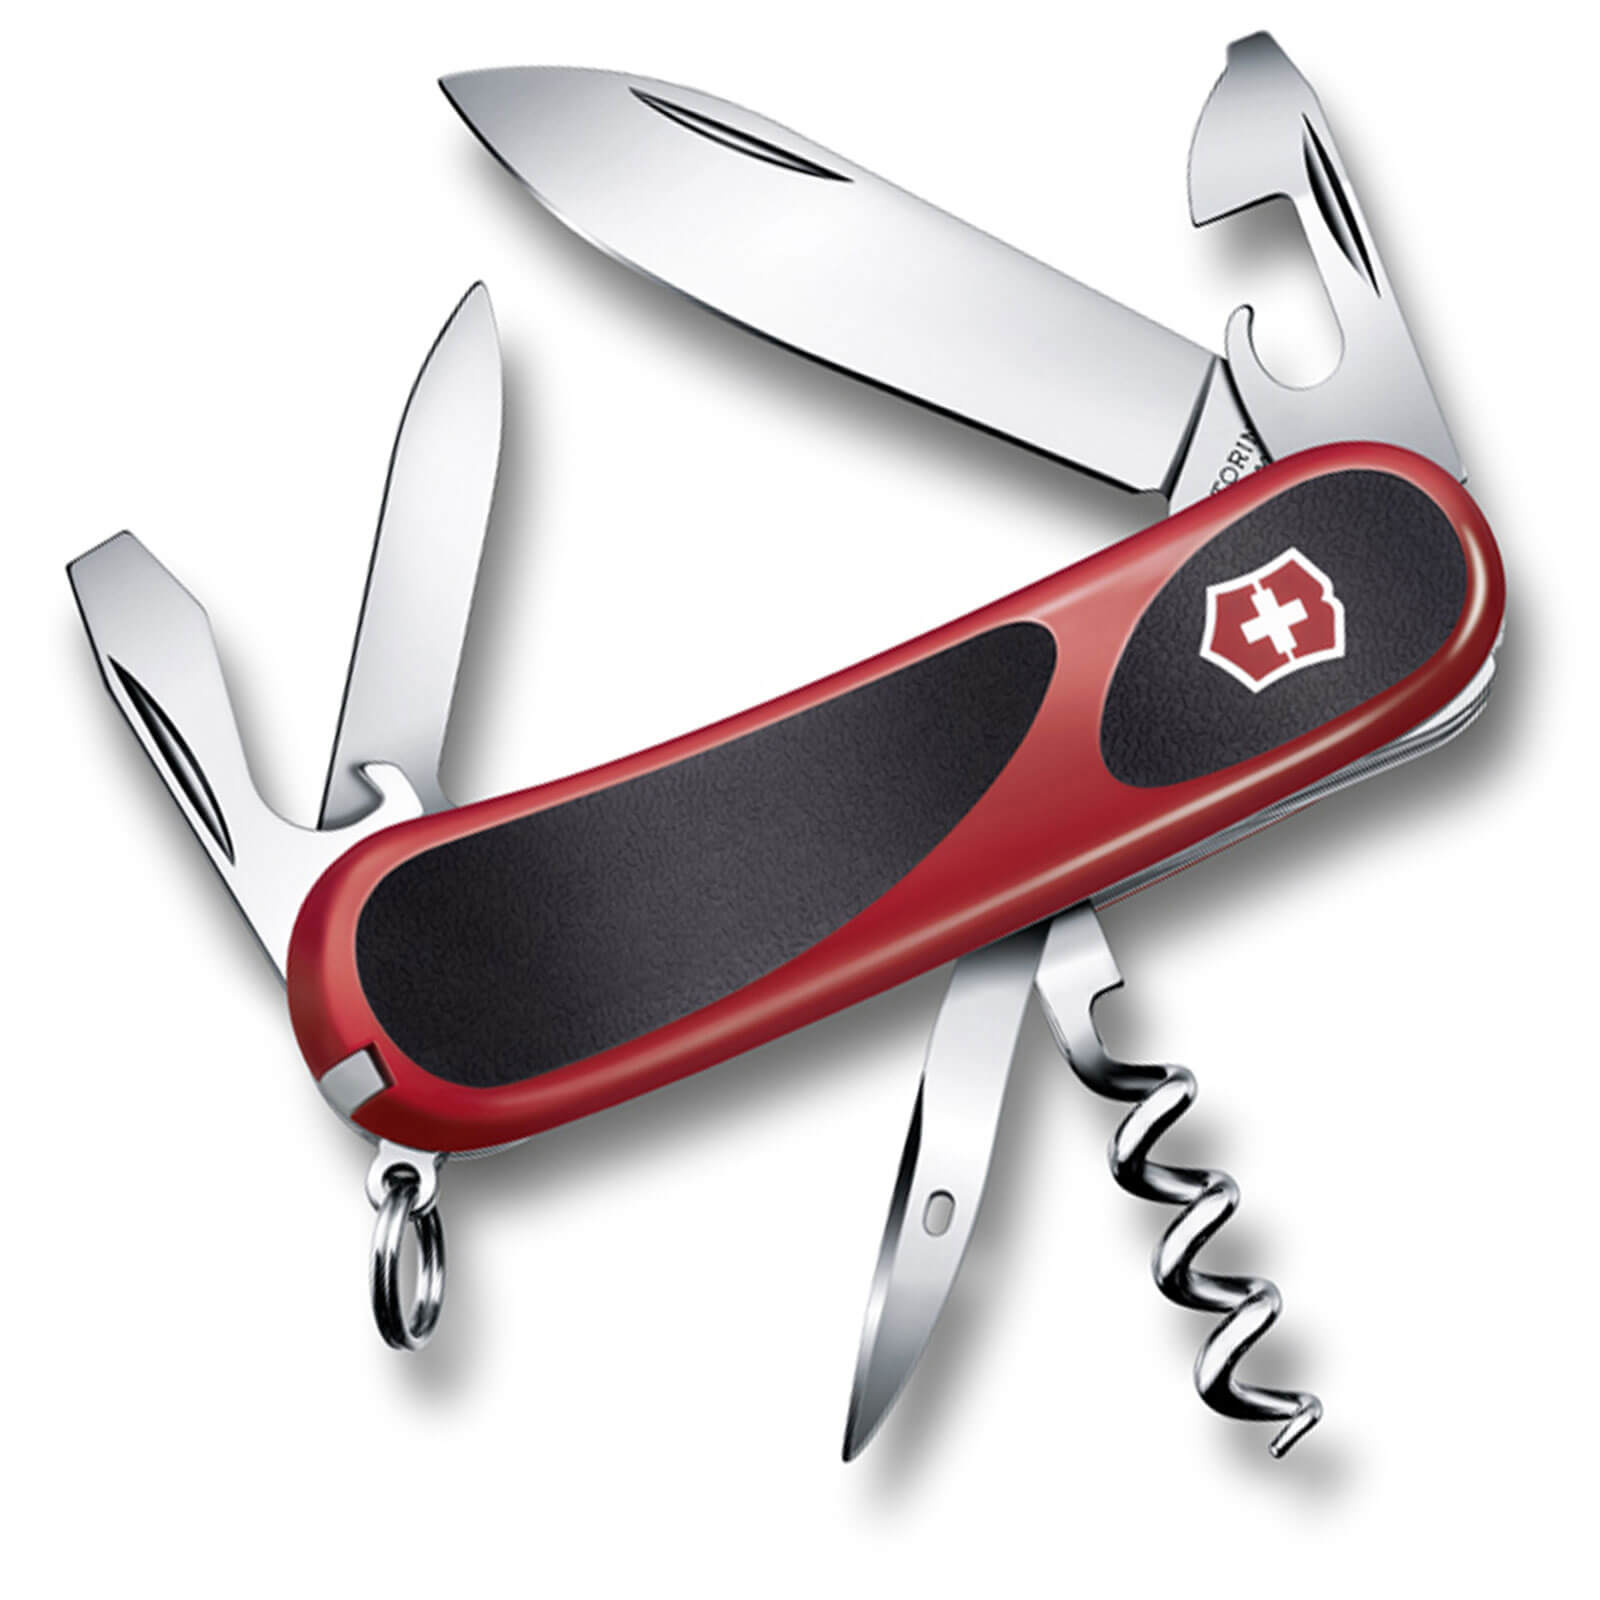 Image of Victorinox Evolution 10 Swiss Army Knife Red / Black